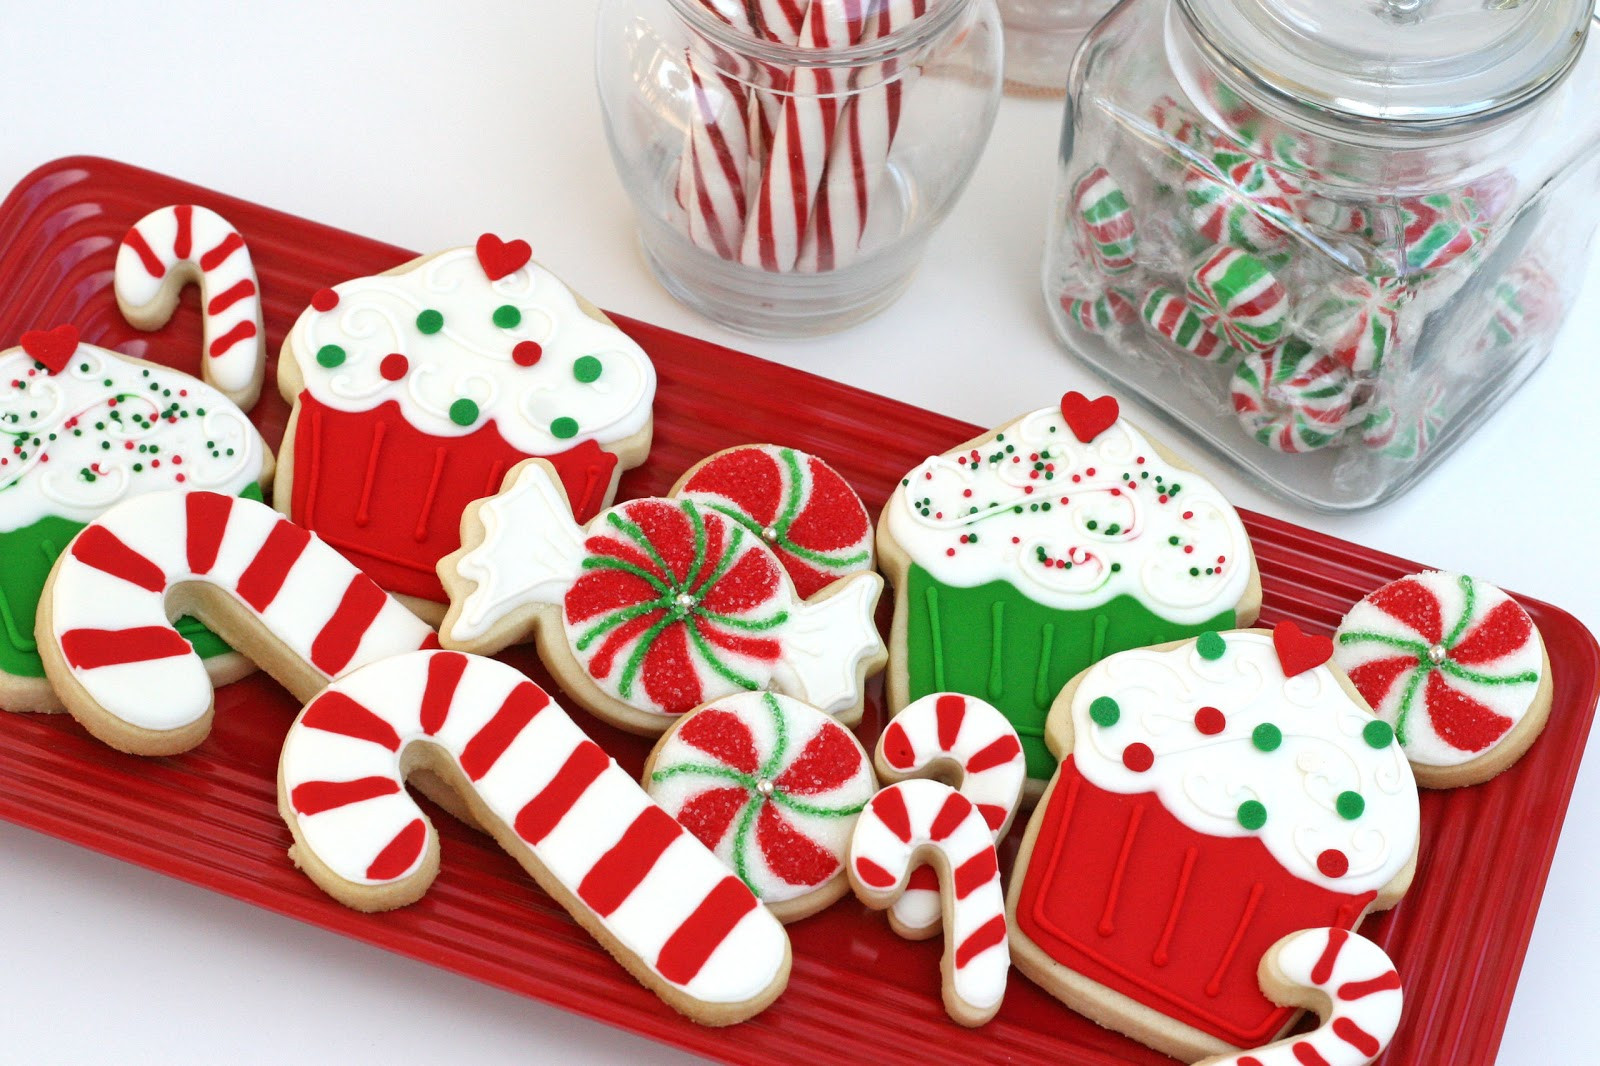 Decorated Christmas Cookies Recipes  Christmas Cookies Galore Glorious Treats